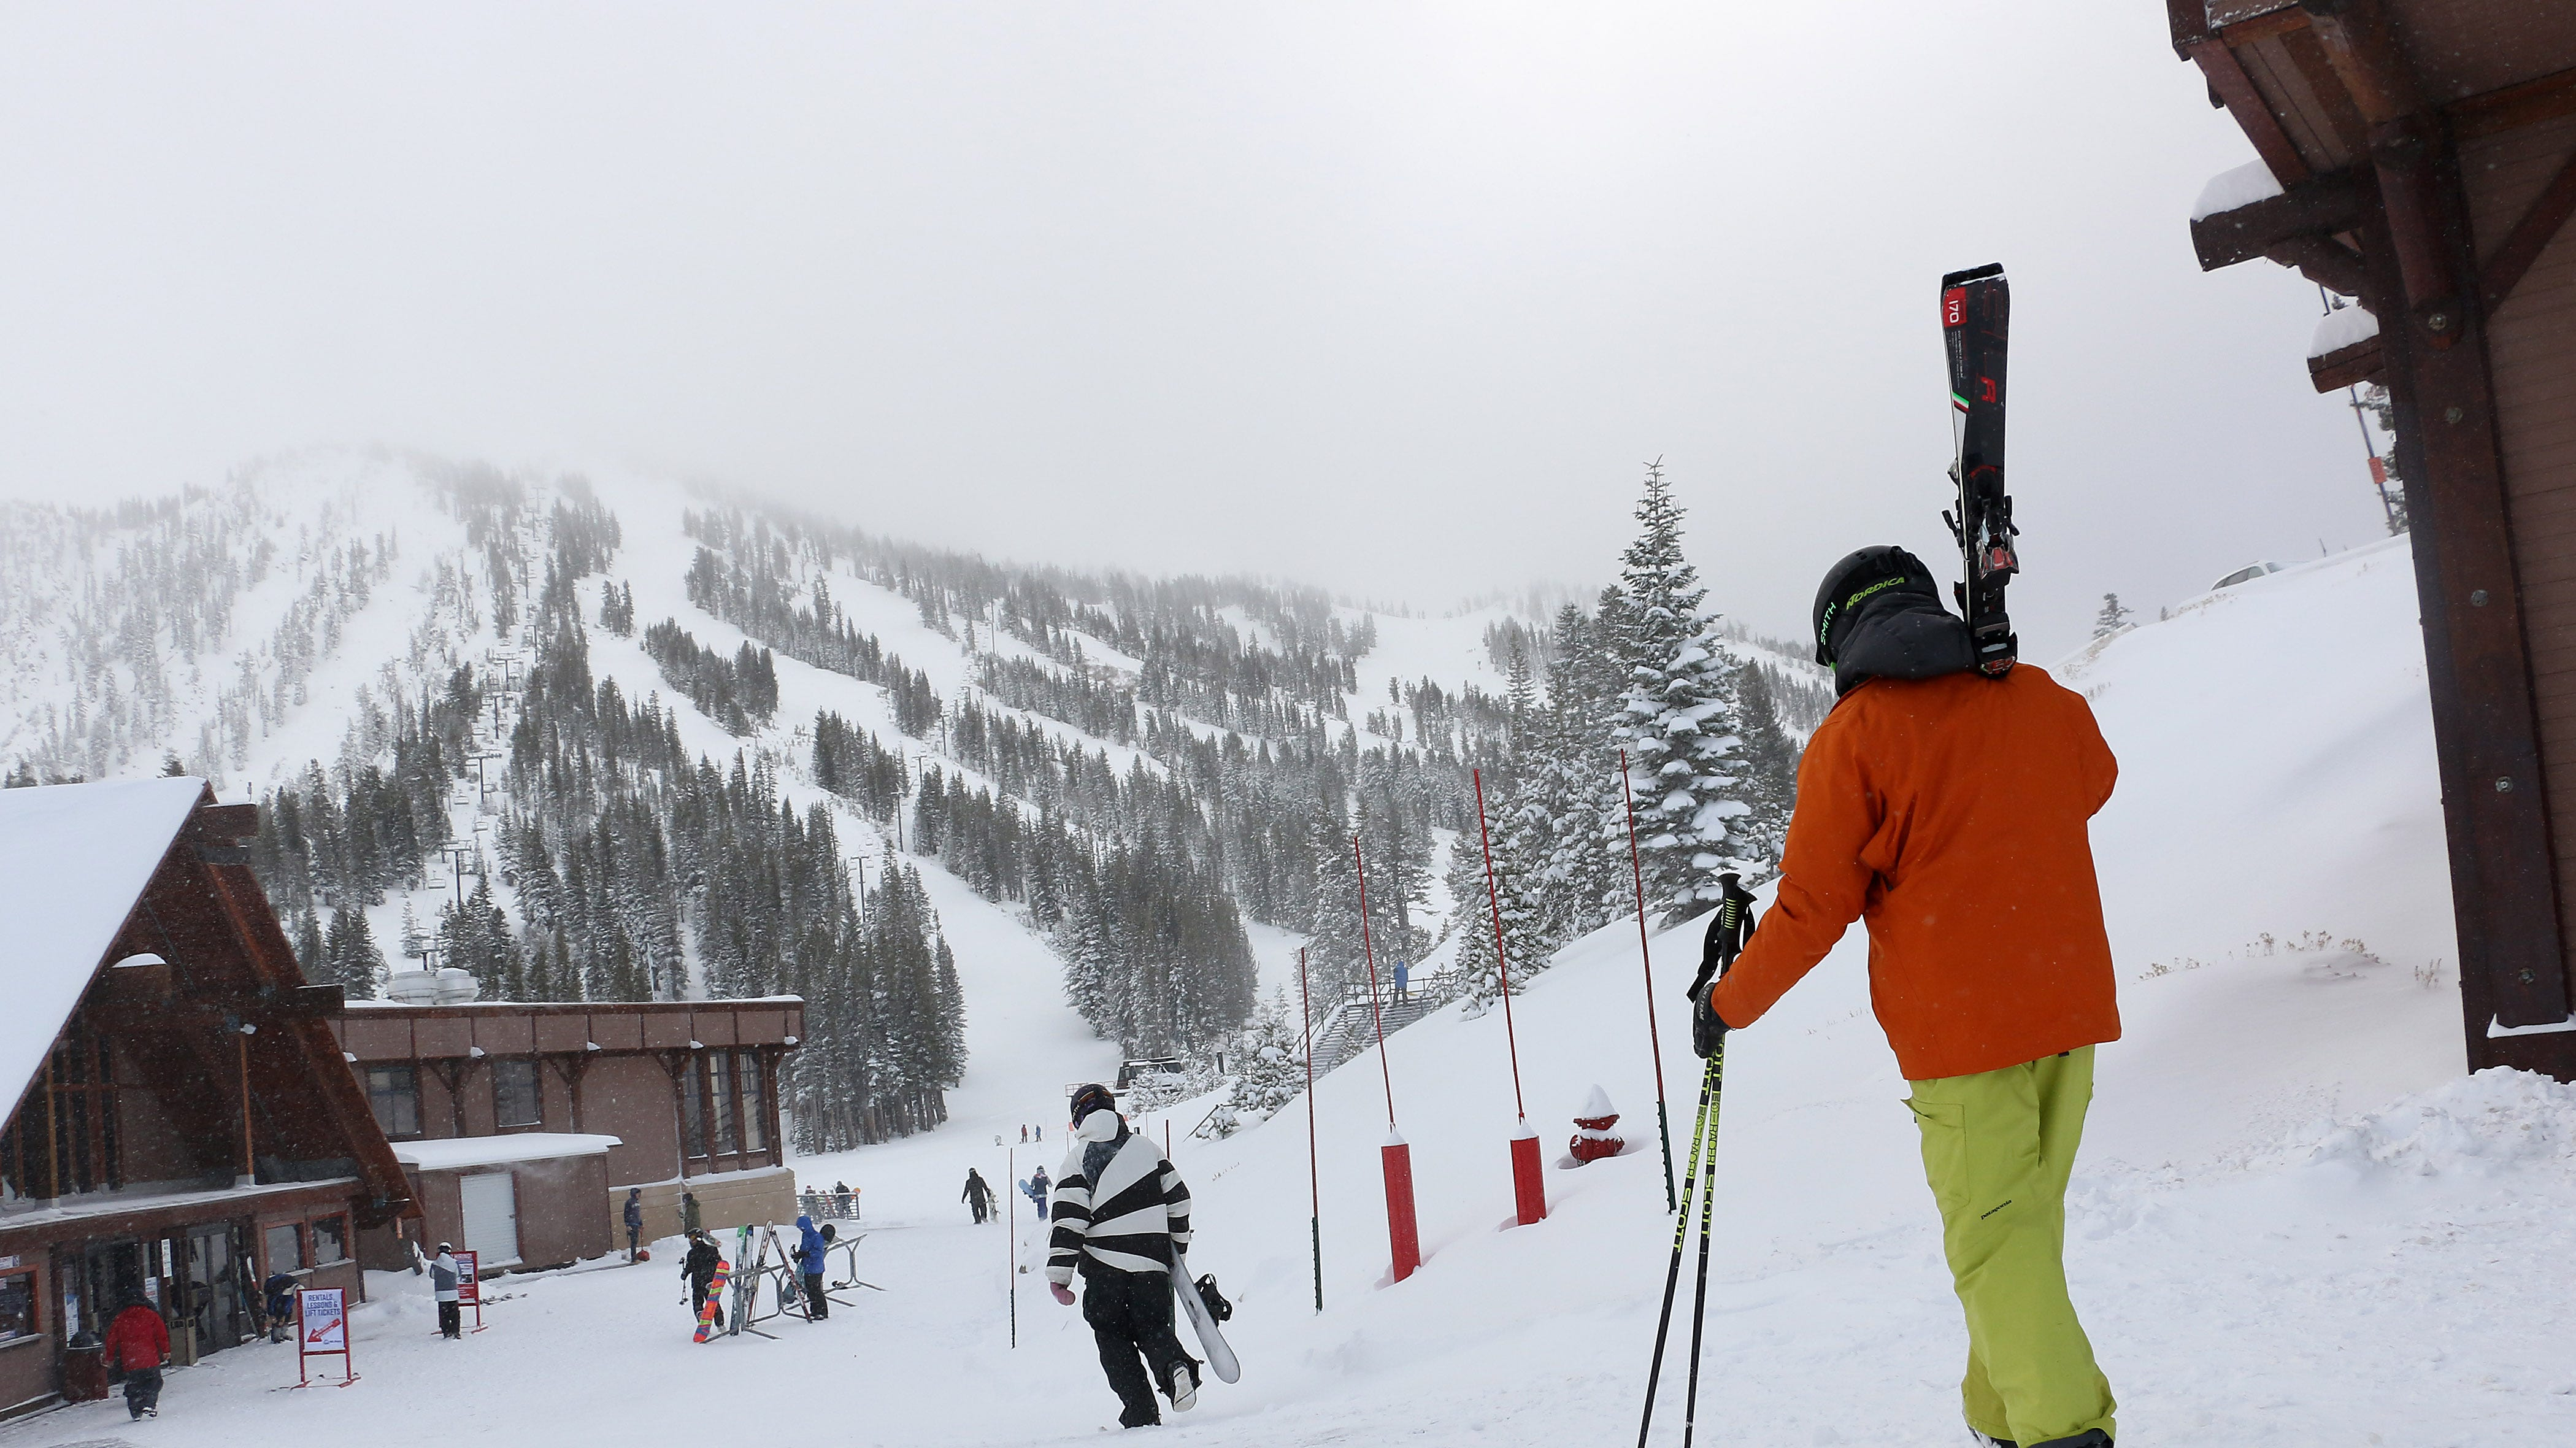 how much snow did area ski resorts get for christmas?